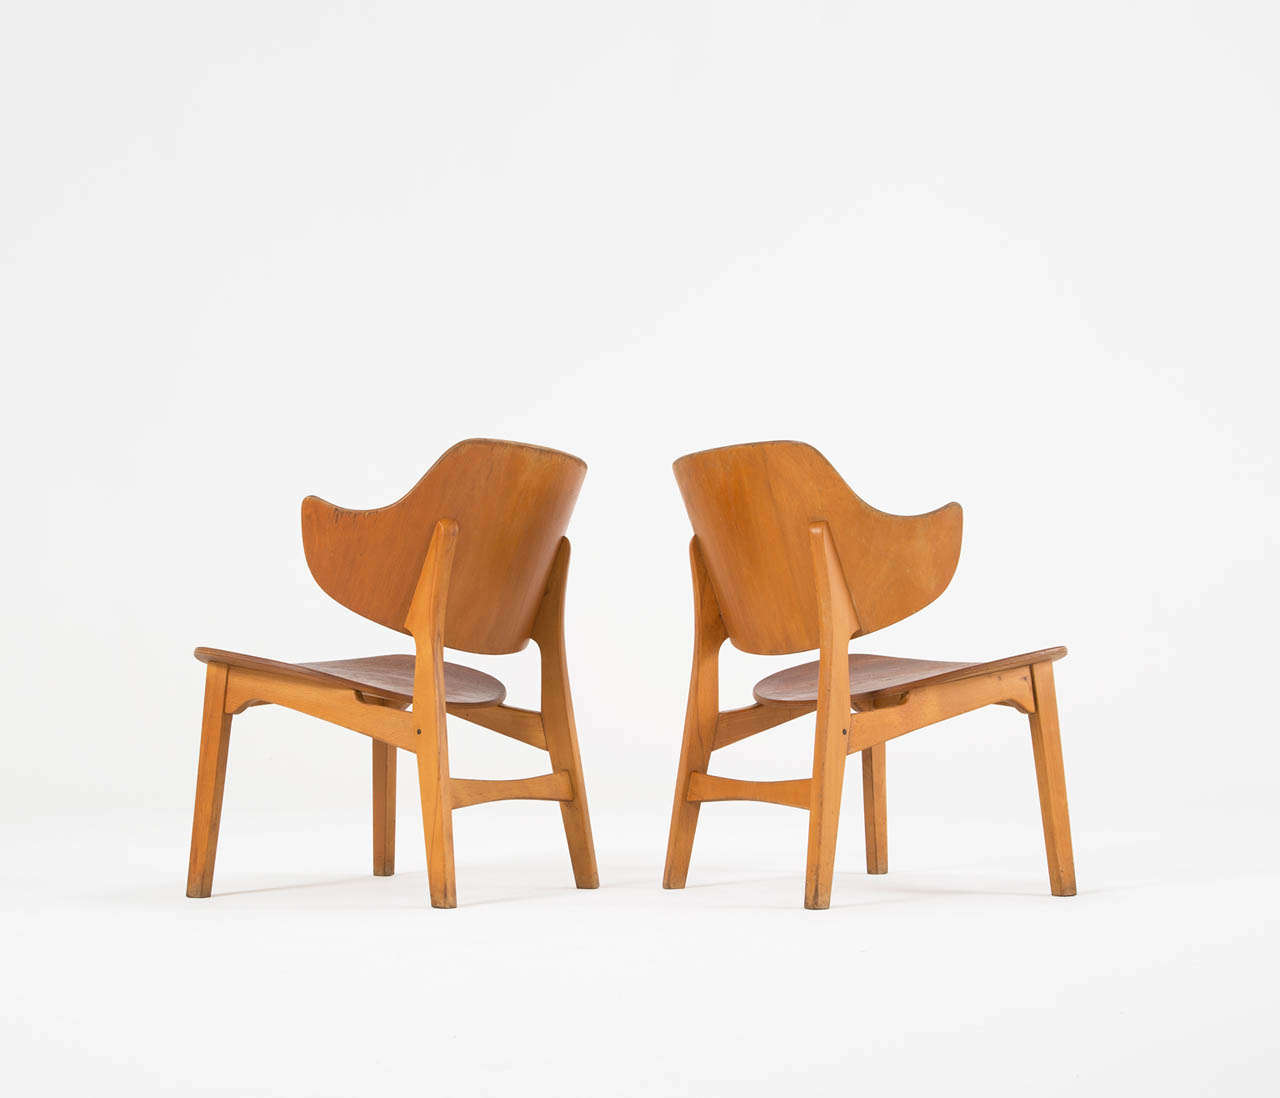 Lounge chairs in plywood, by lb Kofod-Larsen, Denmark 1950s.   The distinctive feature of this pair of plywood easy chairs is its beautifully curved large back which continues in the armrests in one piece. The beech and teak really compliment each